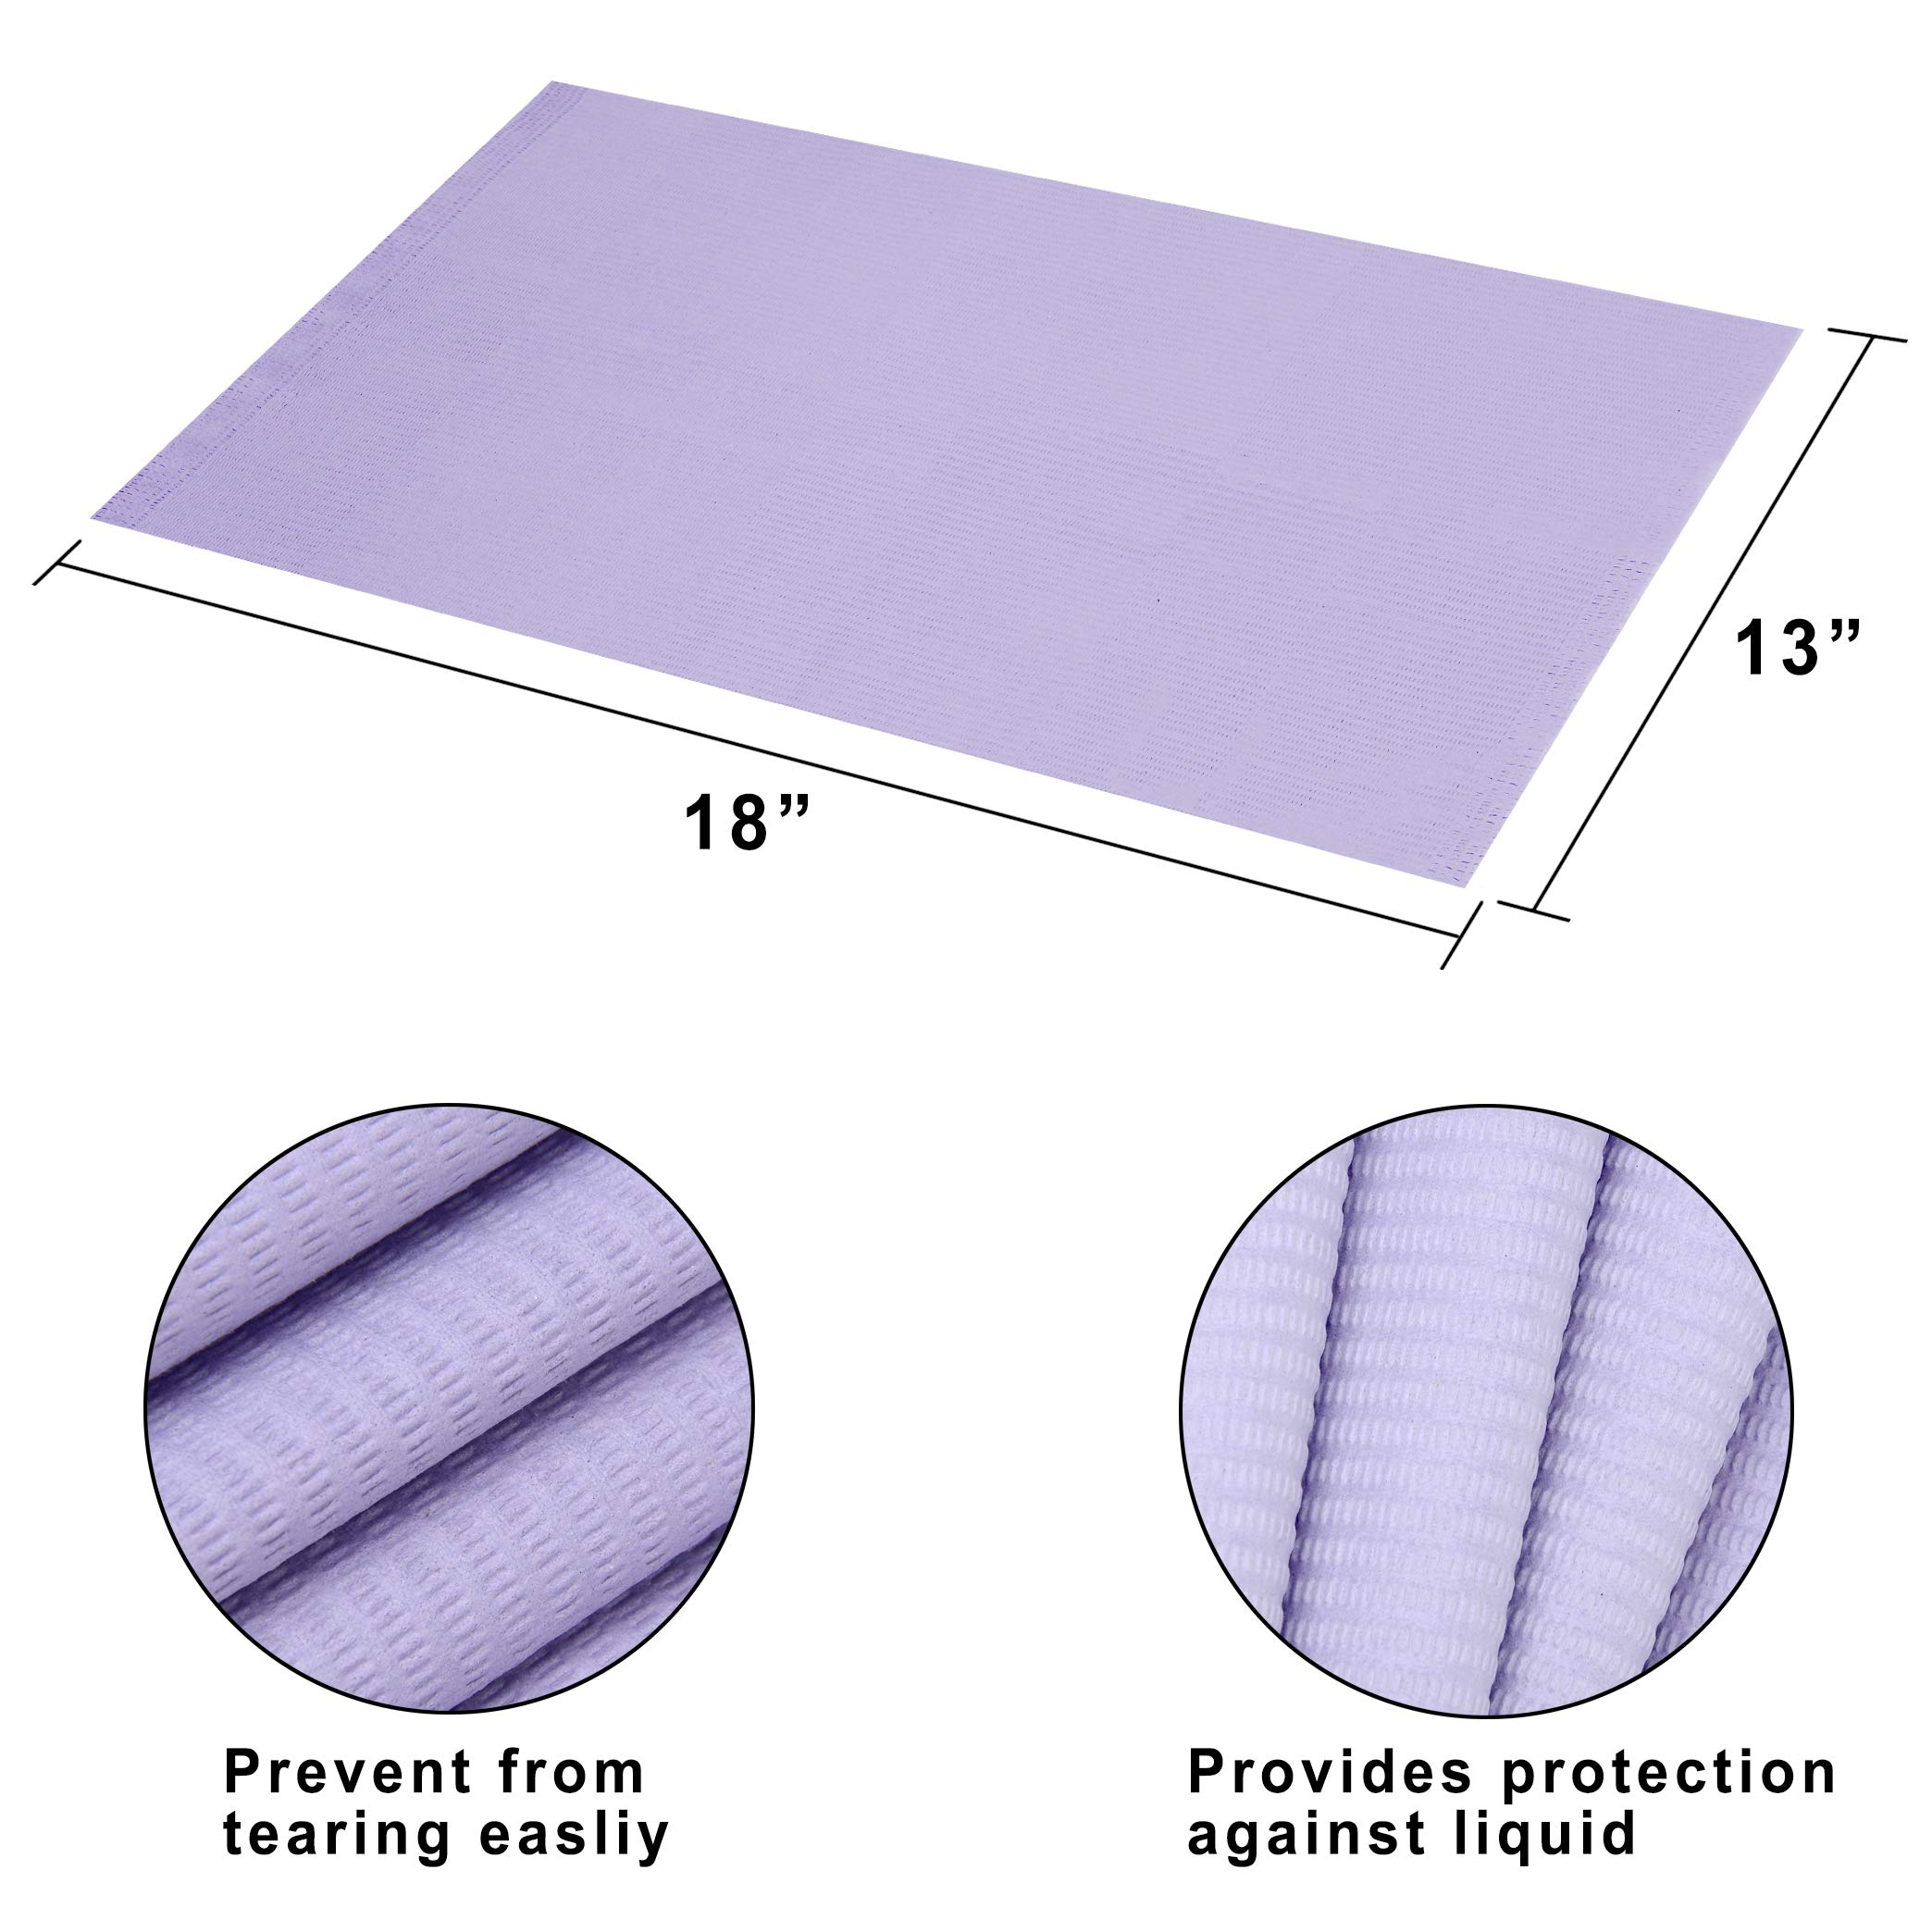 """(Pack of 500) Dental Bib 13"""" X 18"""" 3 Ply Purple Premium Disposable Waterproof Patient Bibs /2 Ply Tissue + 1 Ply Poly/Polyback Sheet; Waterproof Tattoo Bibs, Tattoo Tray Covers and Dental Napkins by JJ CARE (Image #4)"""